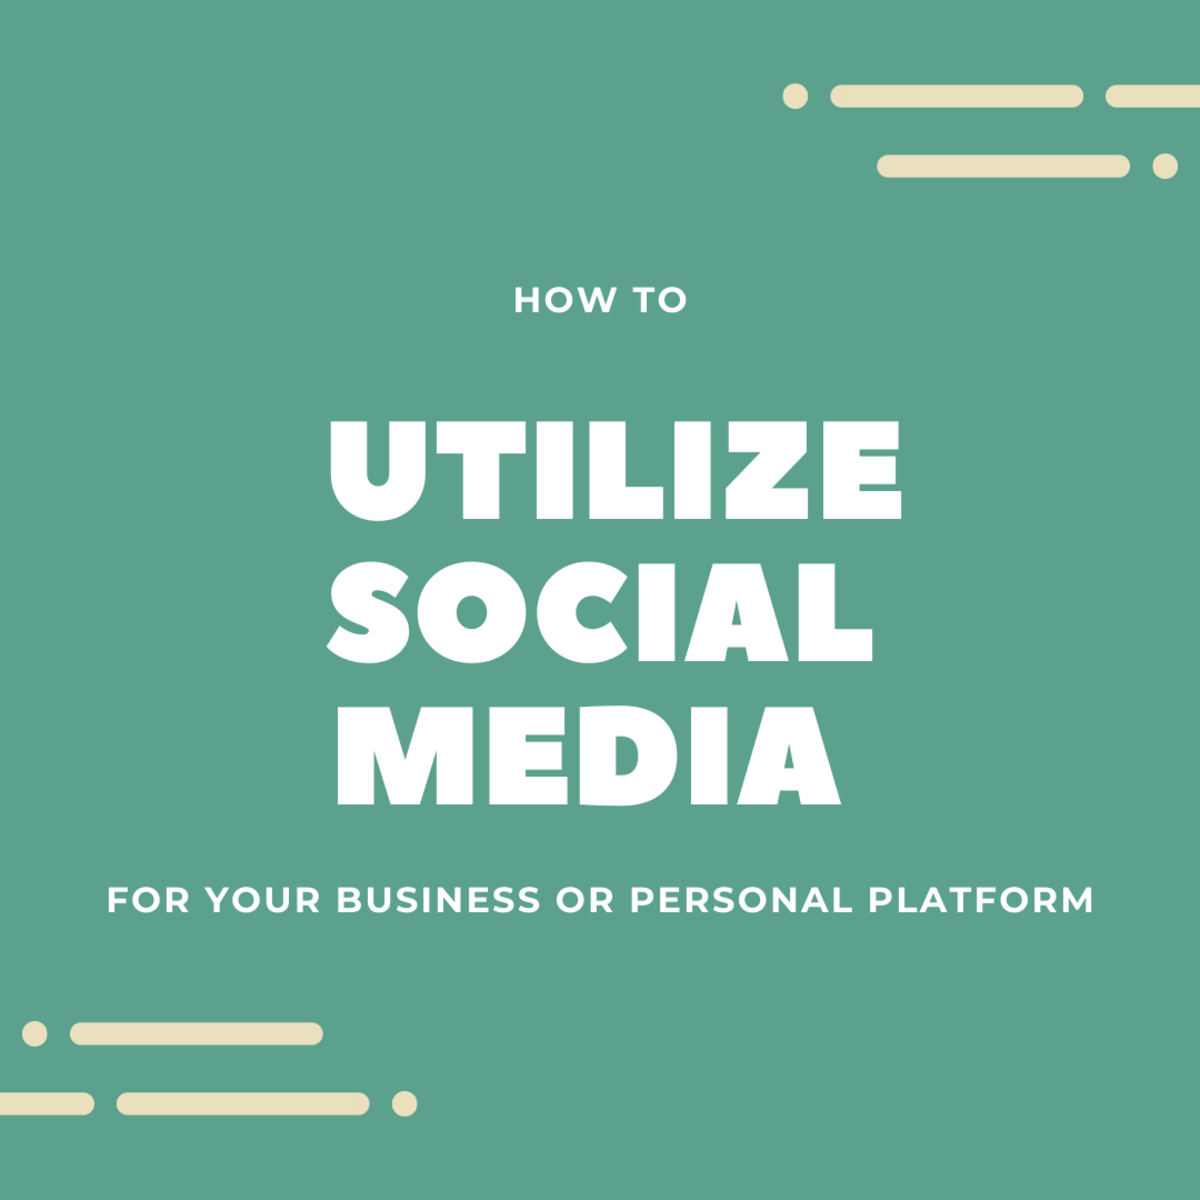 How to Utilize Social Media for Your Business or Personal Platform